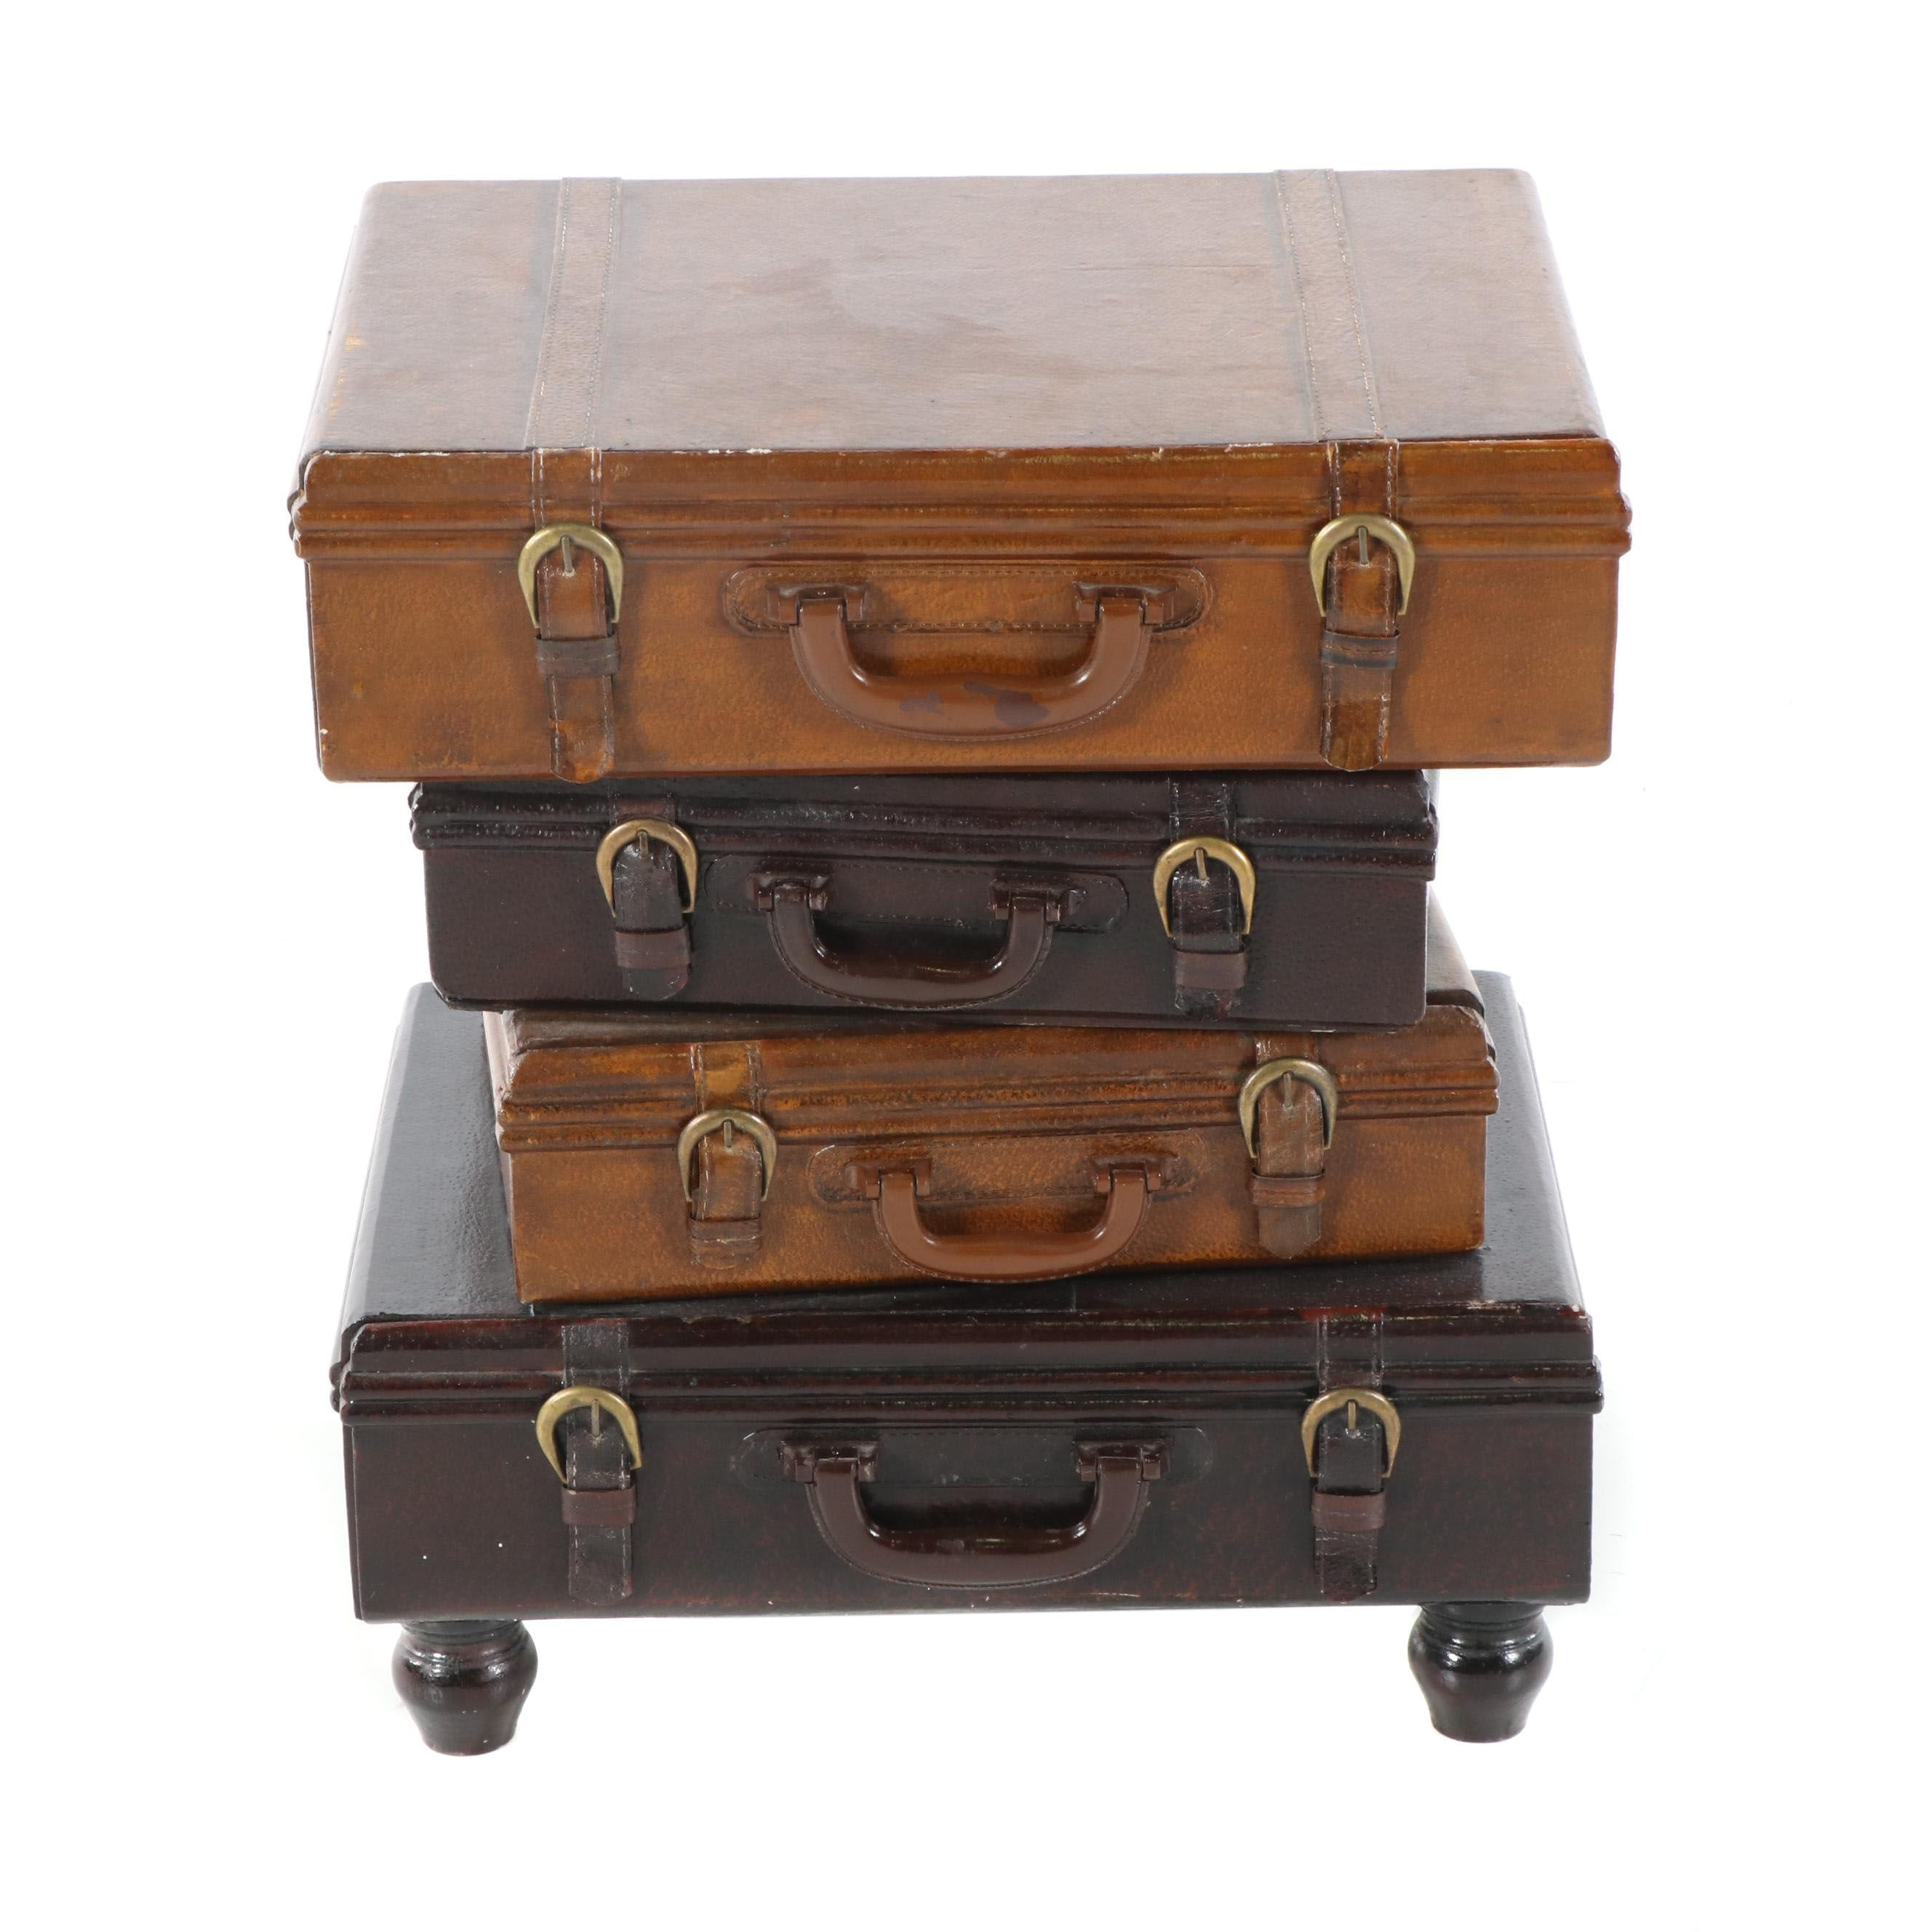 Painted Wood Four-Drawer Luggage Motif Side Table, 21st Century